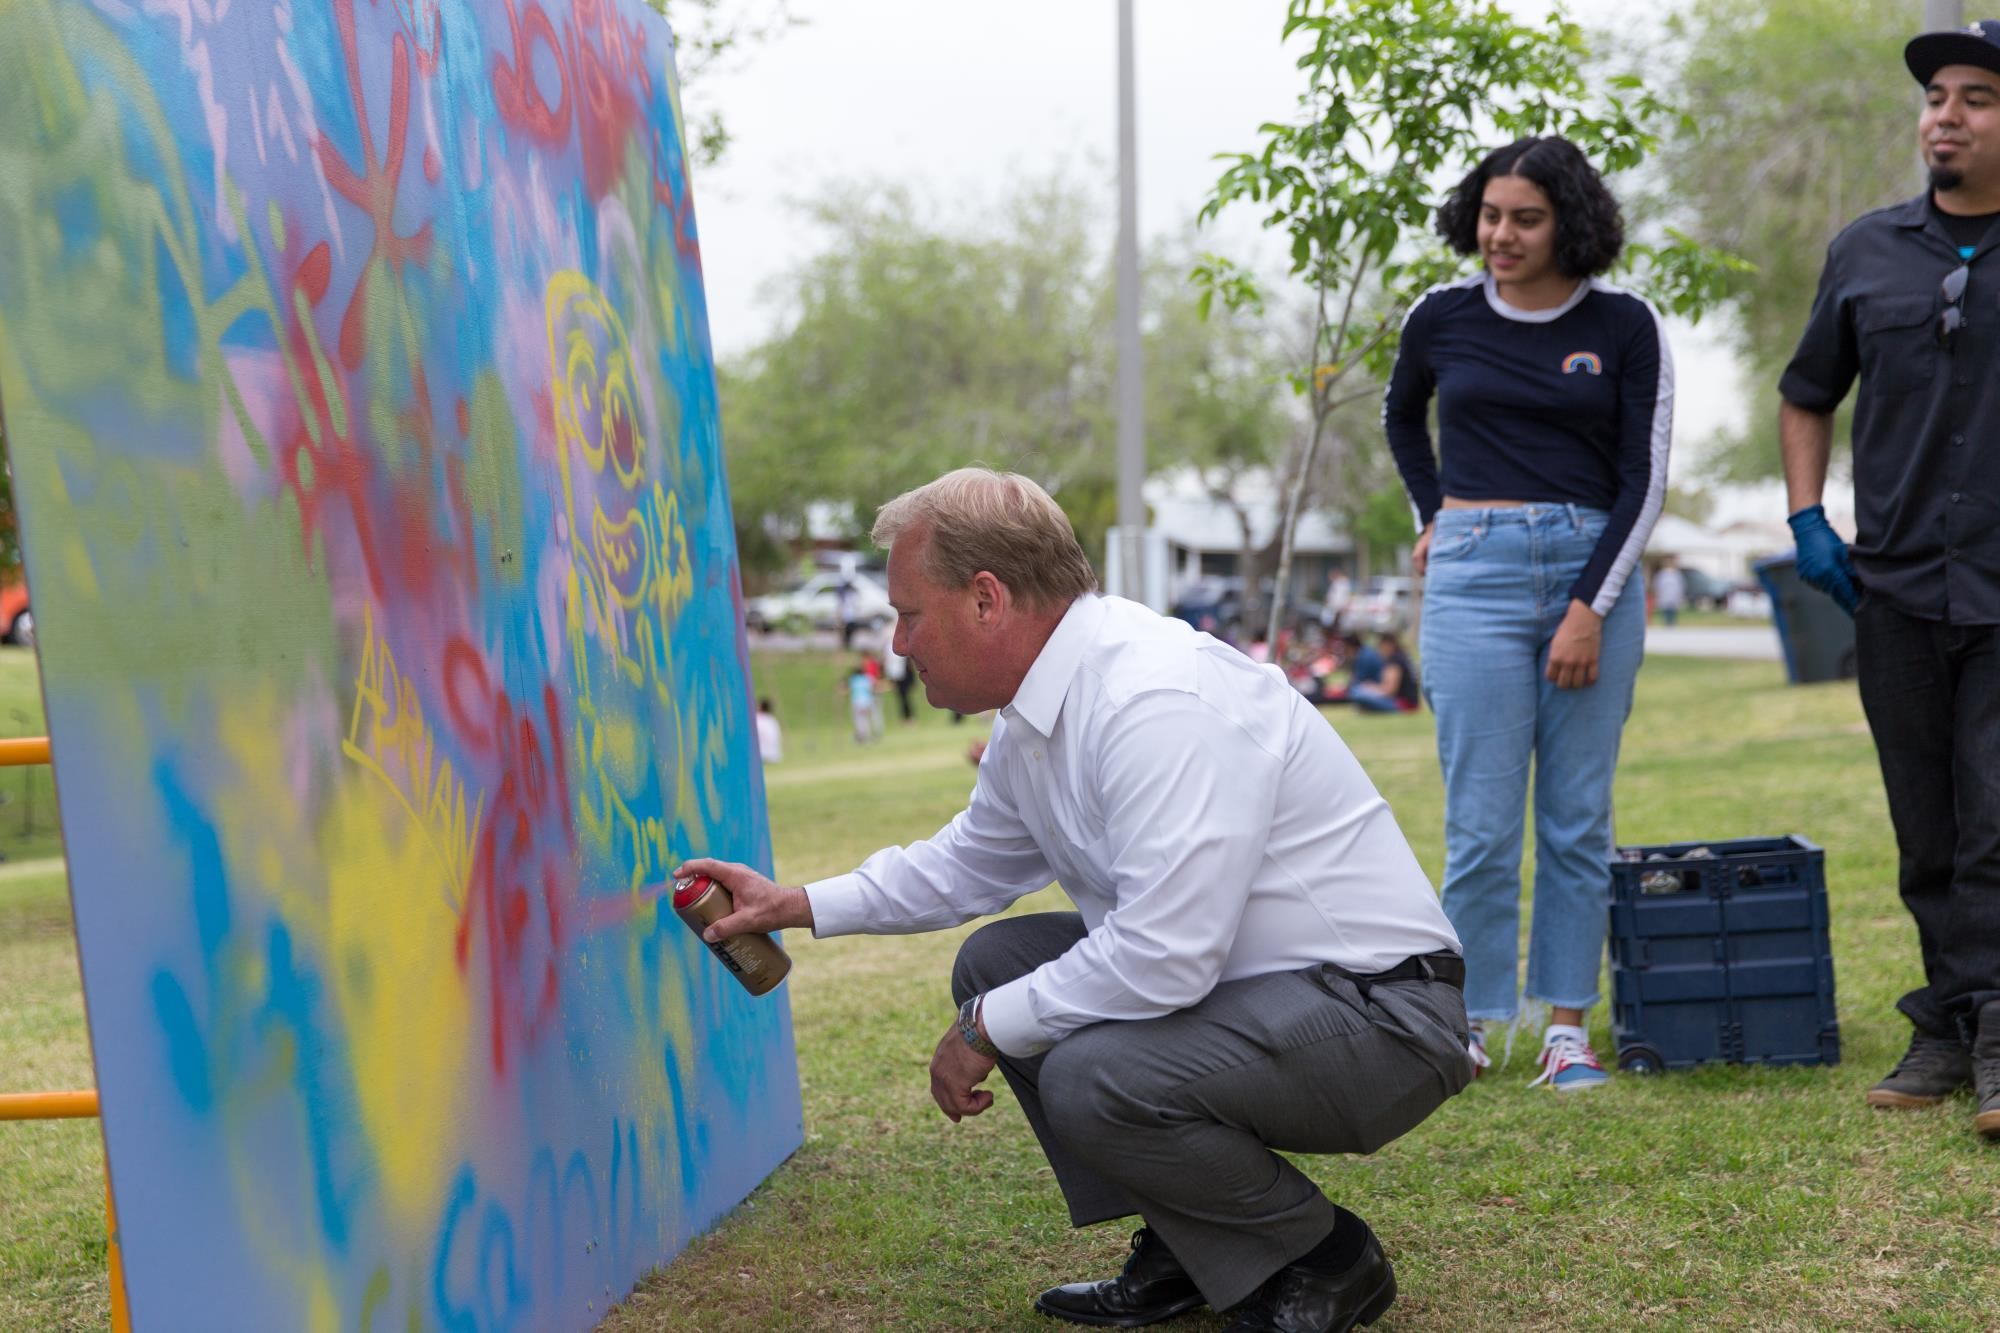 Mayor Mark Mitchell adds to a spray paint mural